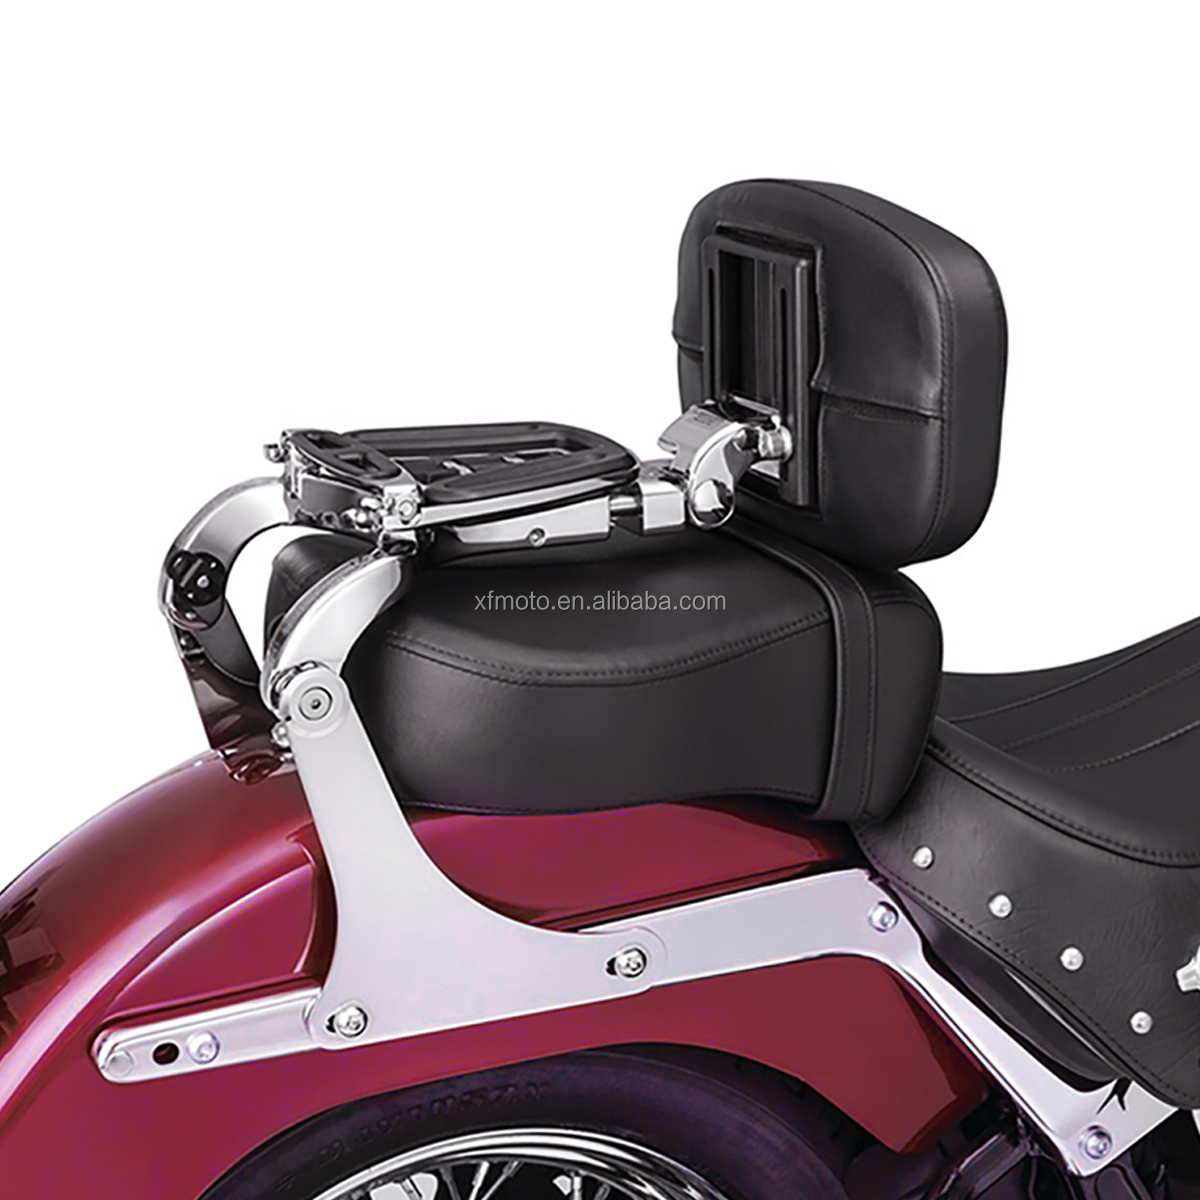 Adjustable Driver Rider Seat Backrest Fit for Heritage Softail Classic FLSTC